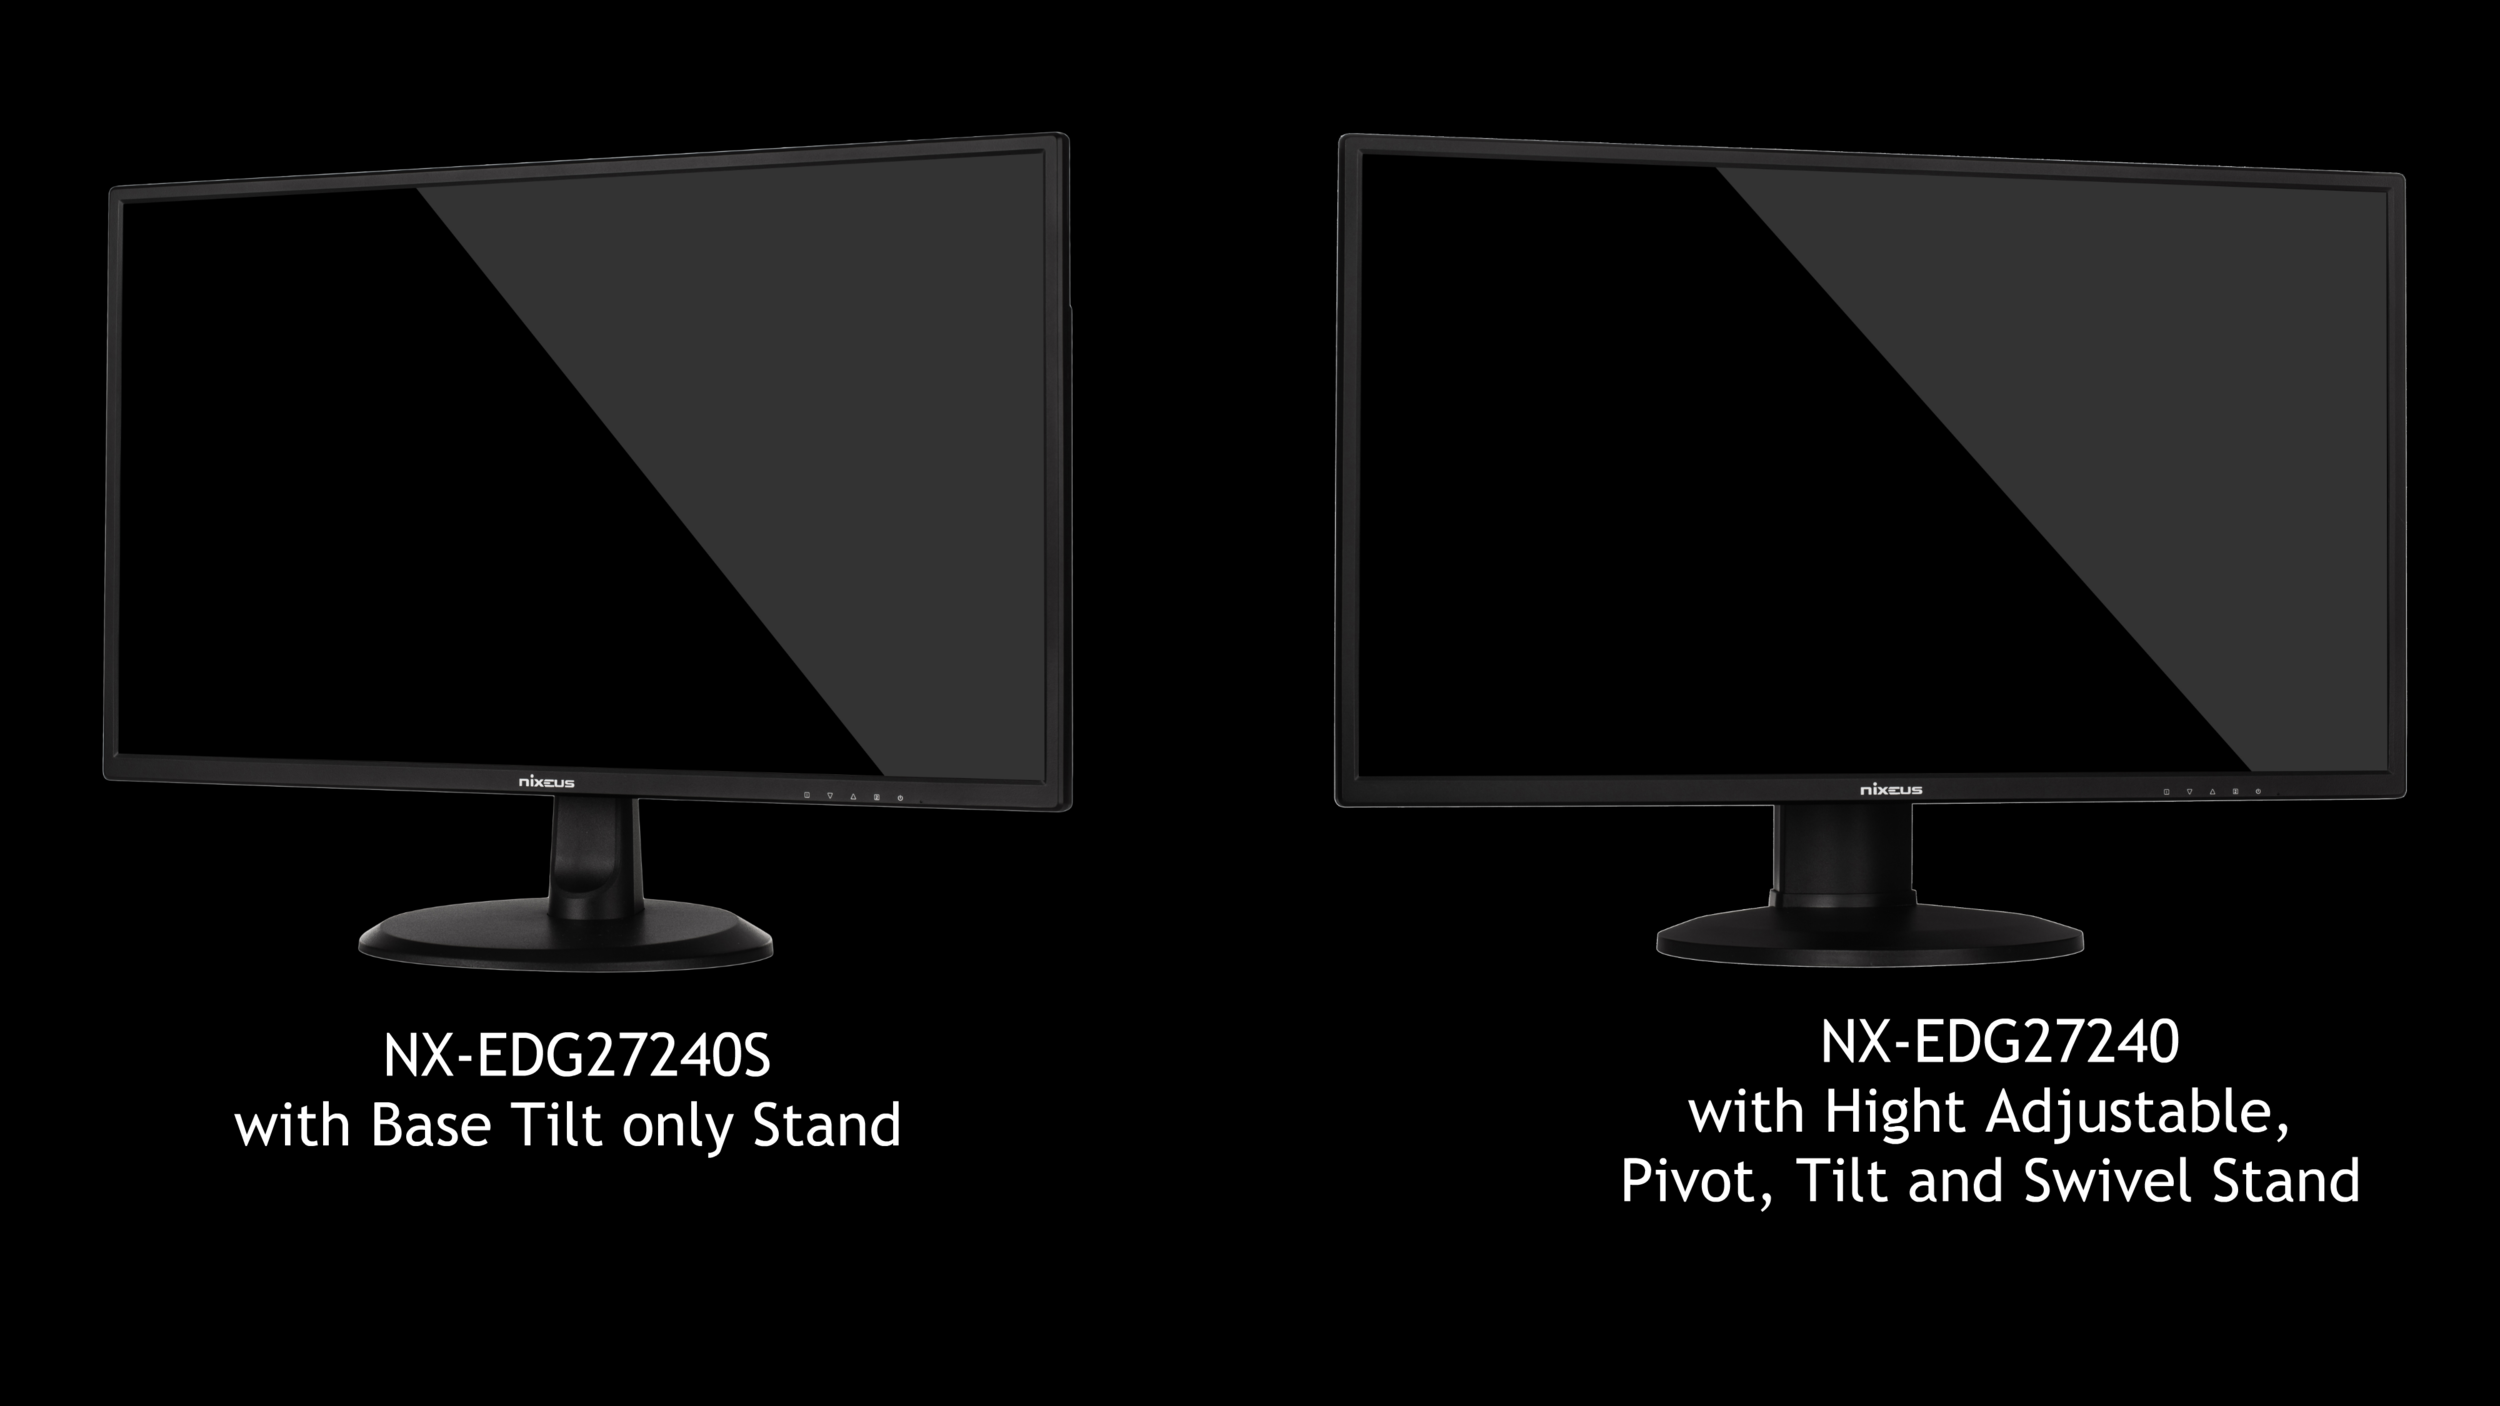 3-6-2019 NX-EDG27240 x two.png